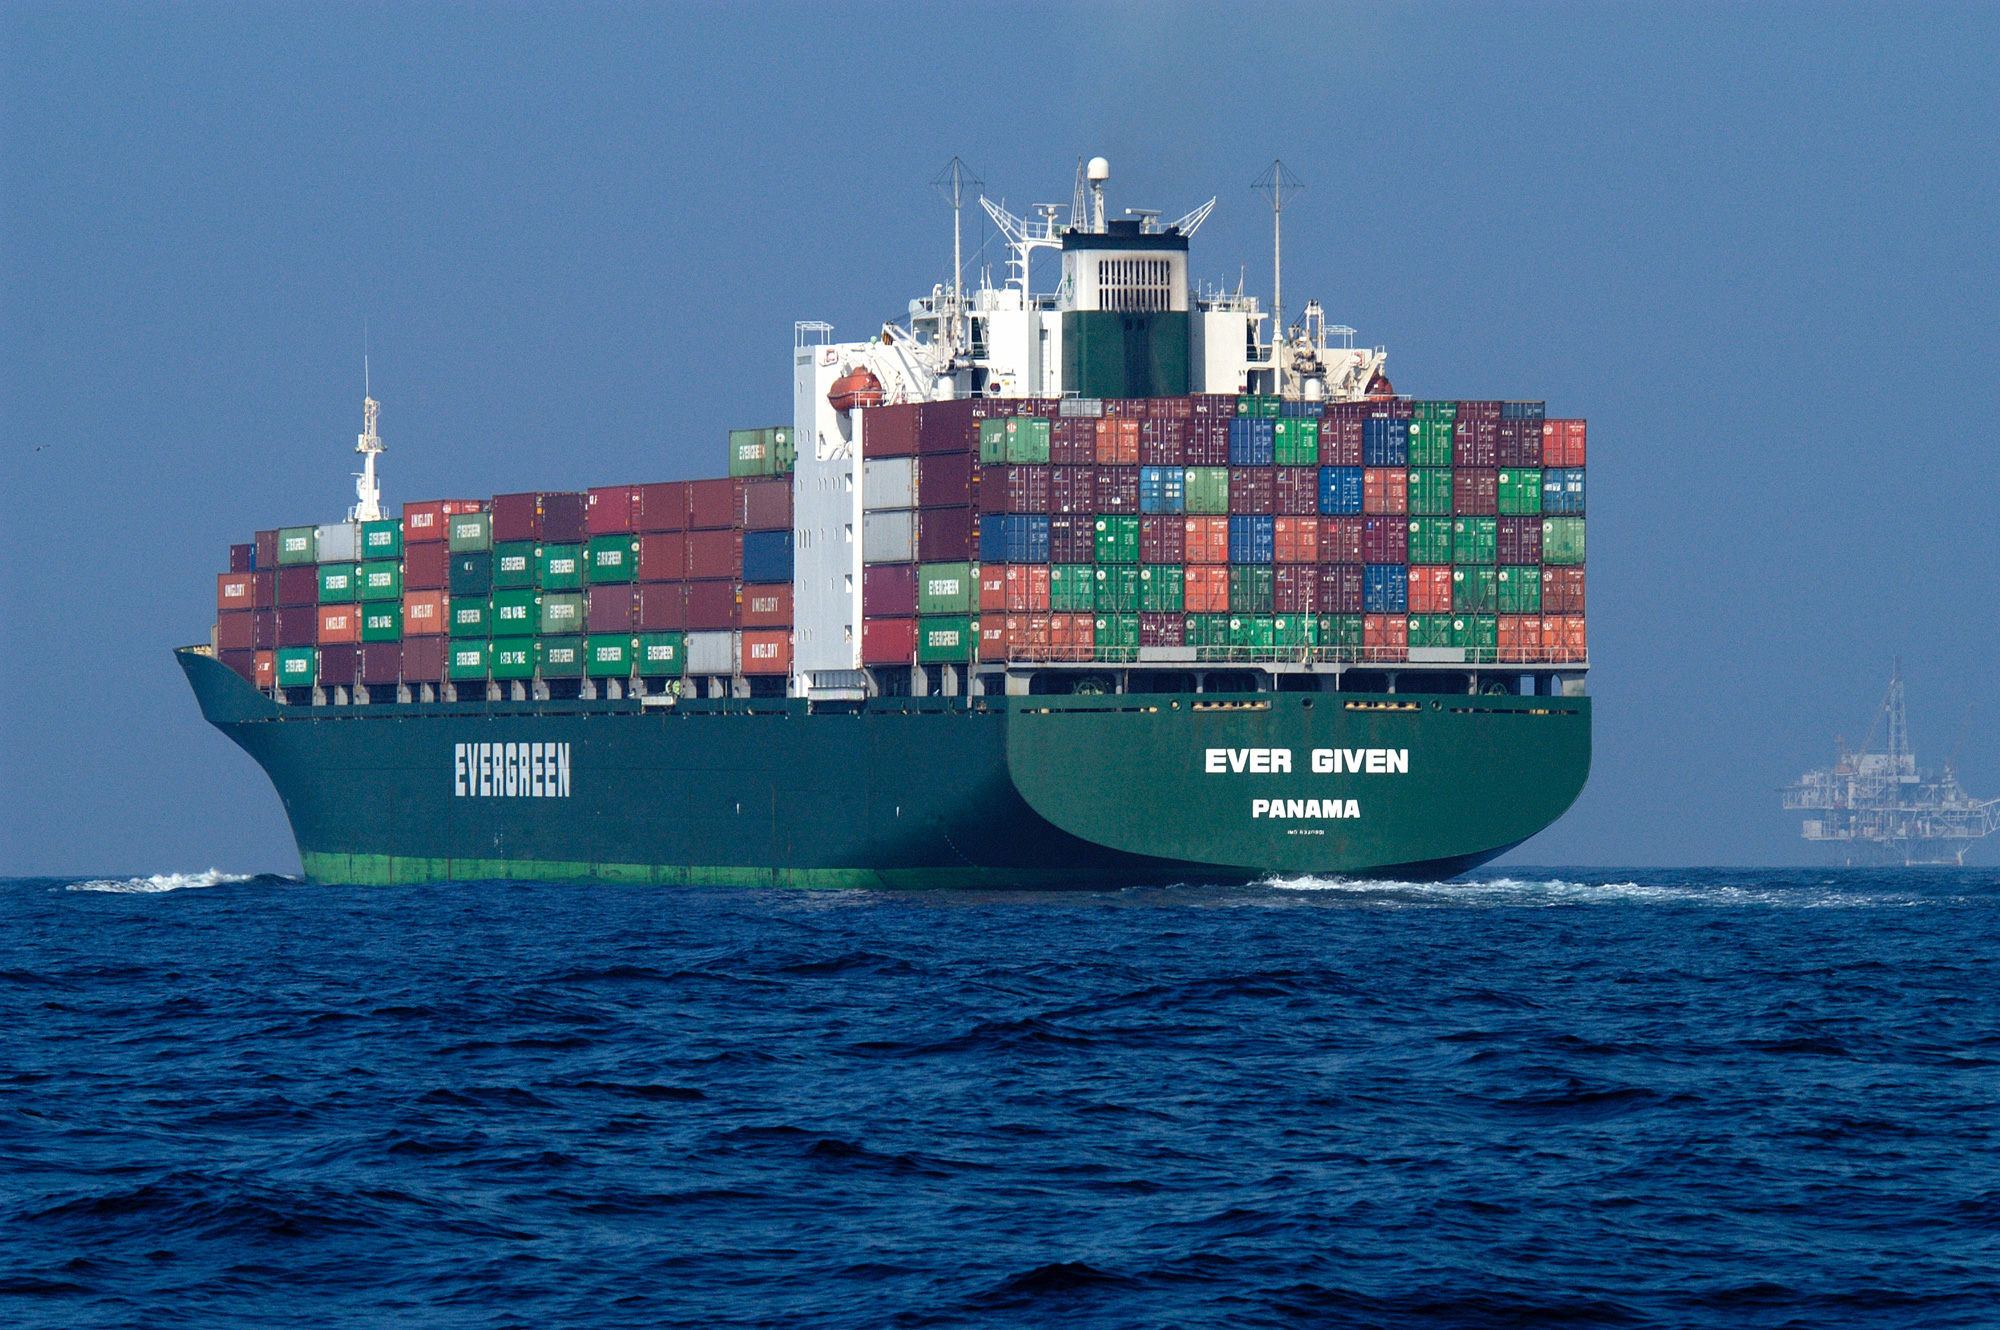 By NOAA's National Ocean Service (Flickr: Container Ship) [CC BY-SA 2.0 (https://creativecommons.org/licenses/by-sa/2.0)], via Wikimedia Commons